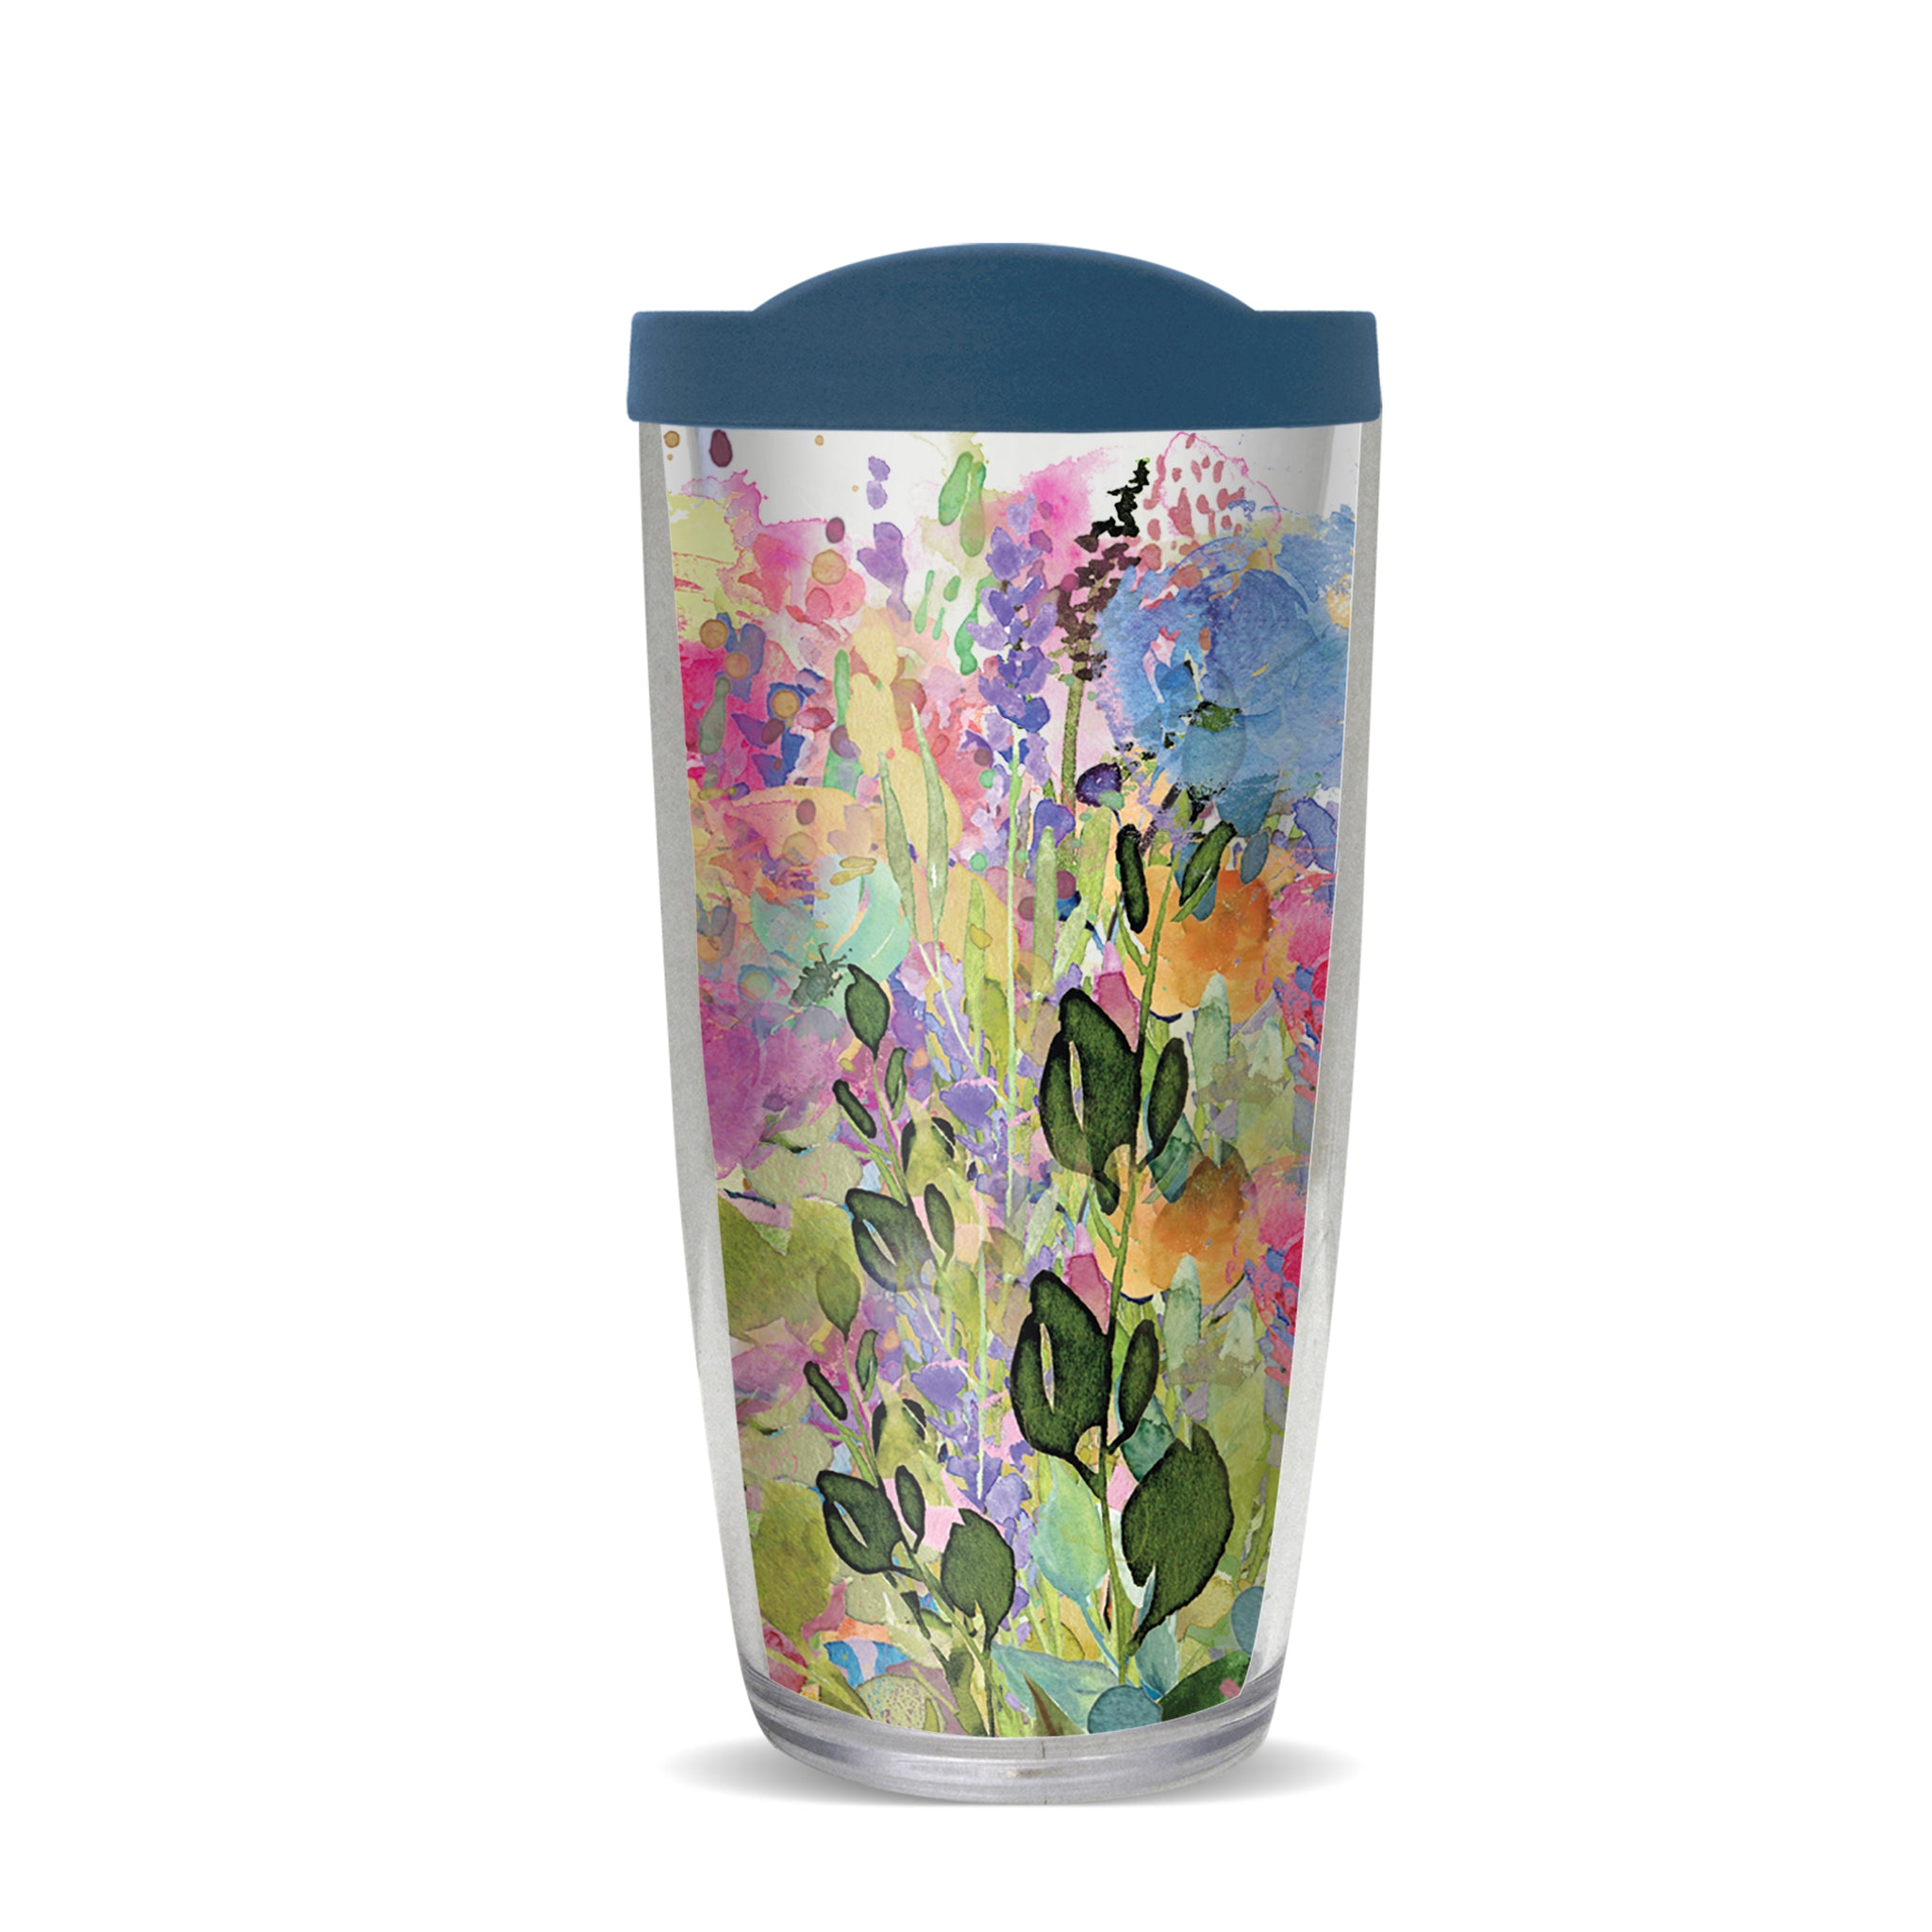 Serendipity Thermal Tumbler, Gina B Designs